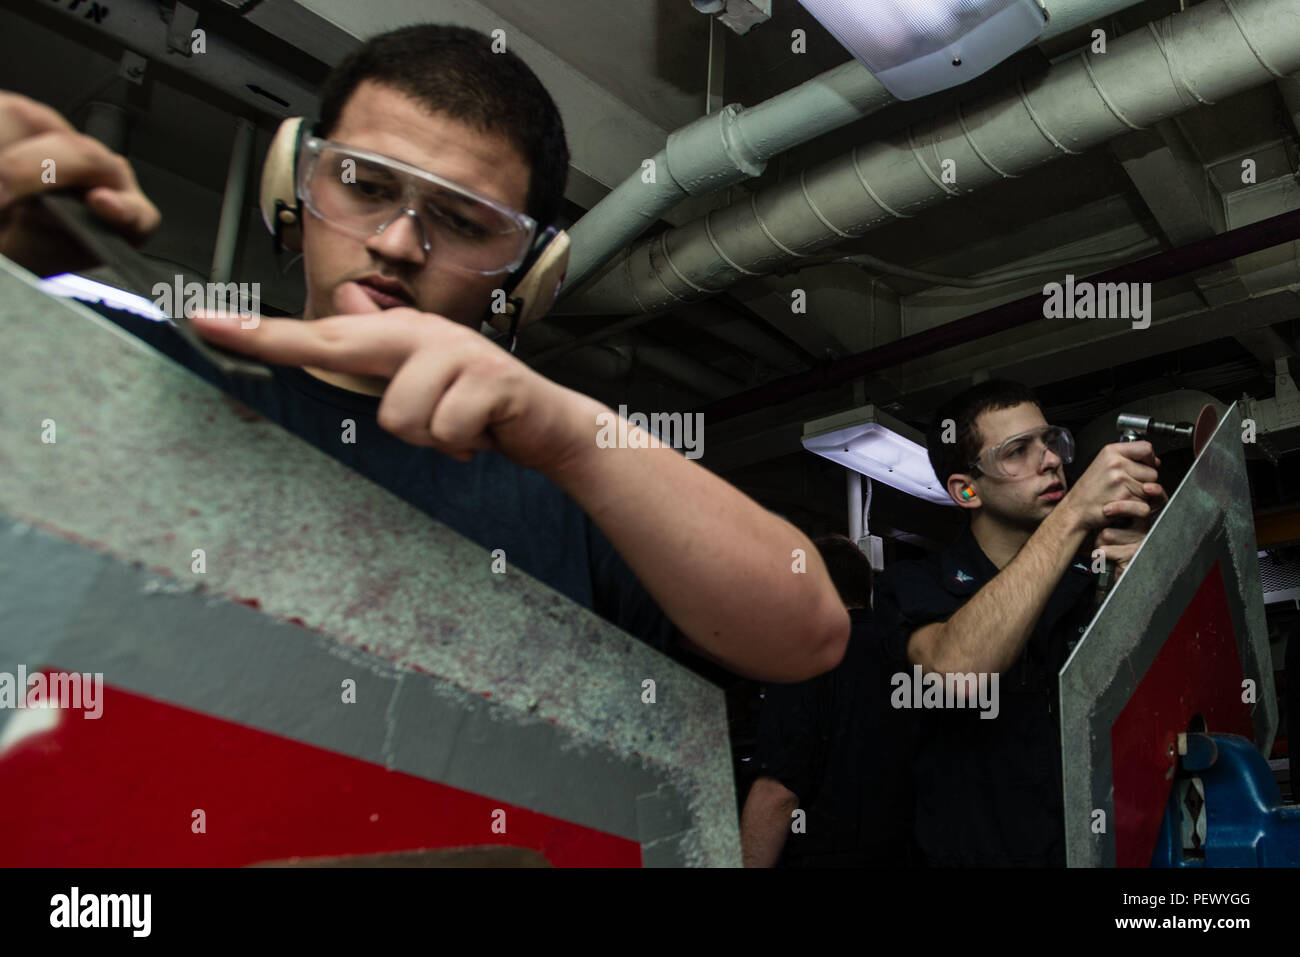 160211-N-MY174-009 PACIFIC OCEAN (Feb. 11, 2016) - Damage Controlman 3rd Class Felice Gabardi, from Boston, and Hull Maintenance Technician 3rd Class Anthony Hatcher, from Marsville, Calif., fabricate rat guards in USS John C. Stennis' (CVN 74) repair shop. Providing a combat-ready force to protect collective maritime interests, Stennis is operating as part of the Great Green Fleet on a regularly scheduled Western Pacific deployment. (U.S. Navy photo by Mass Communication Specialist Seaman Tomas Compian / Released) - Stock Image